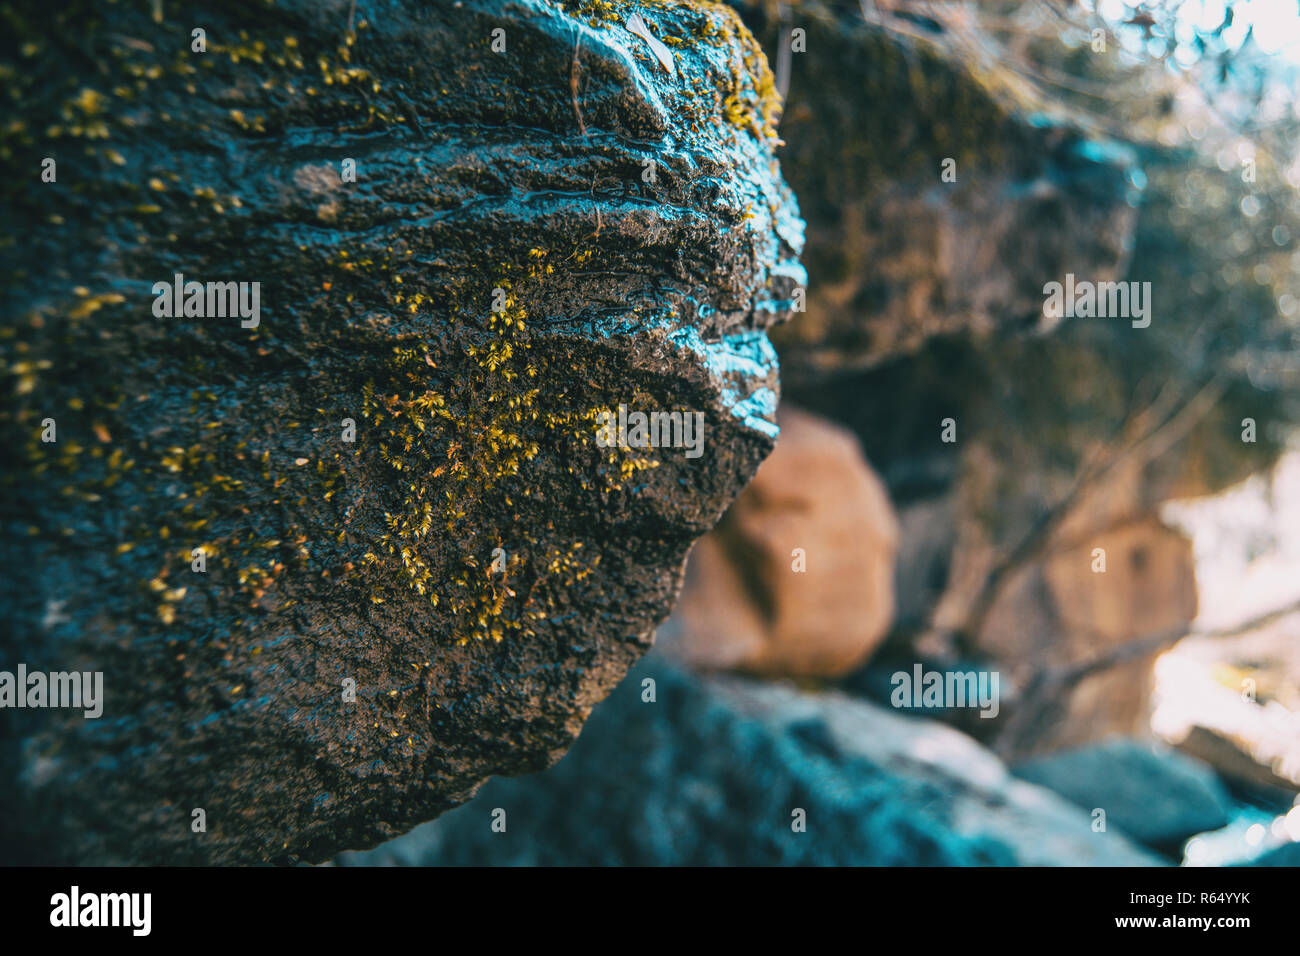 A big stone tilted with a bit of moss and more unfocused stones in the background - Stock Image